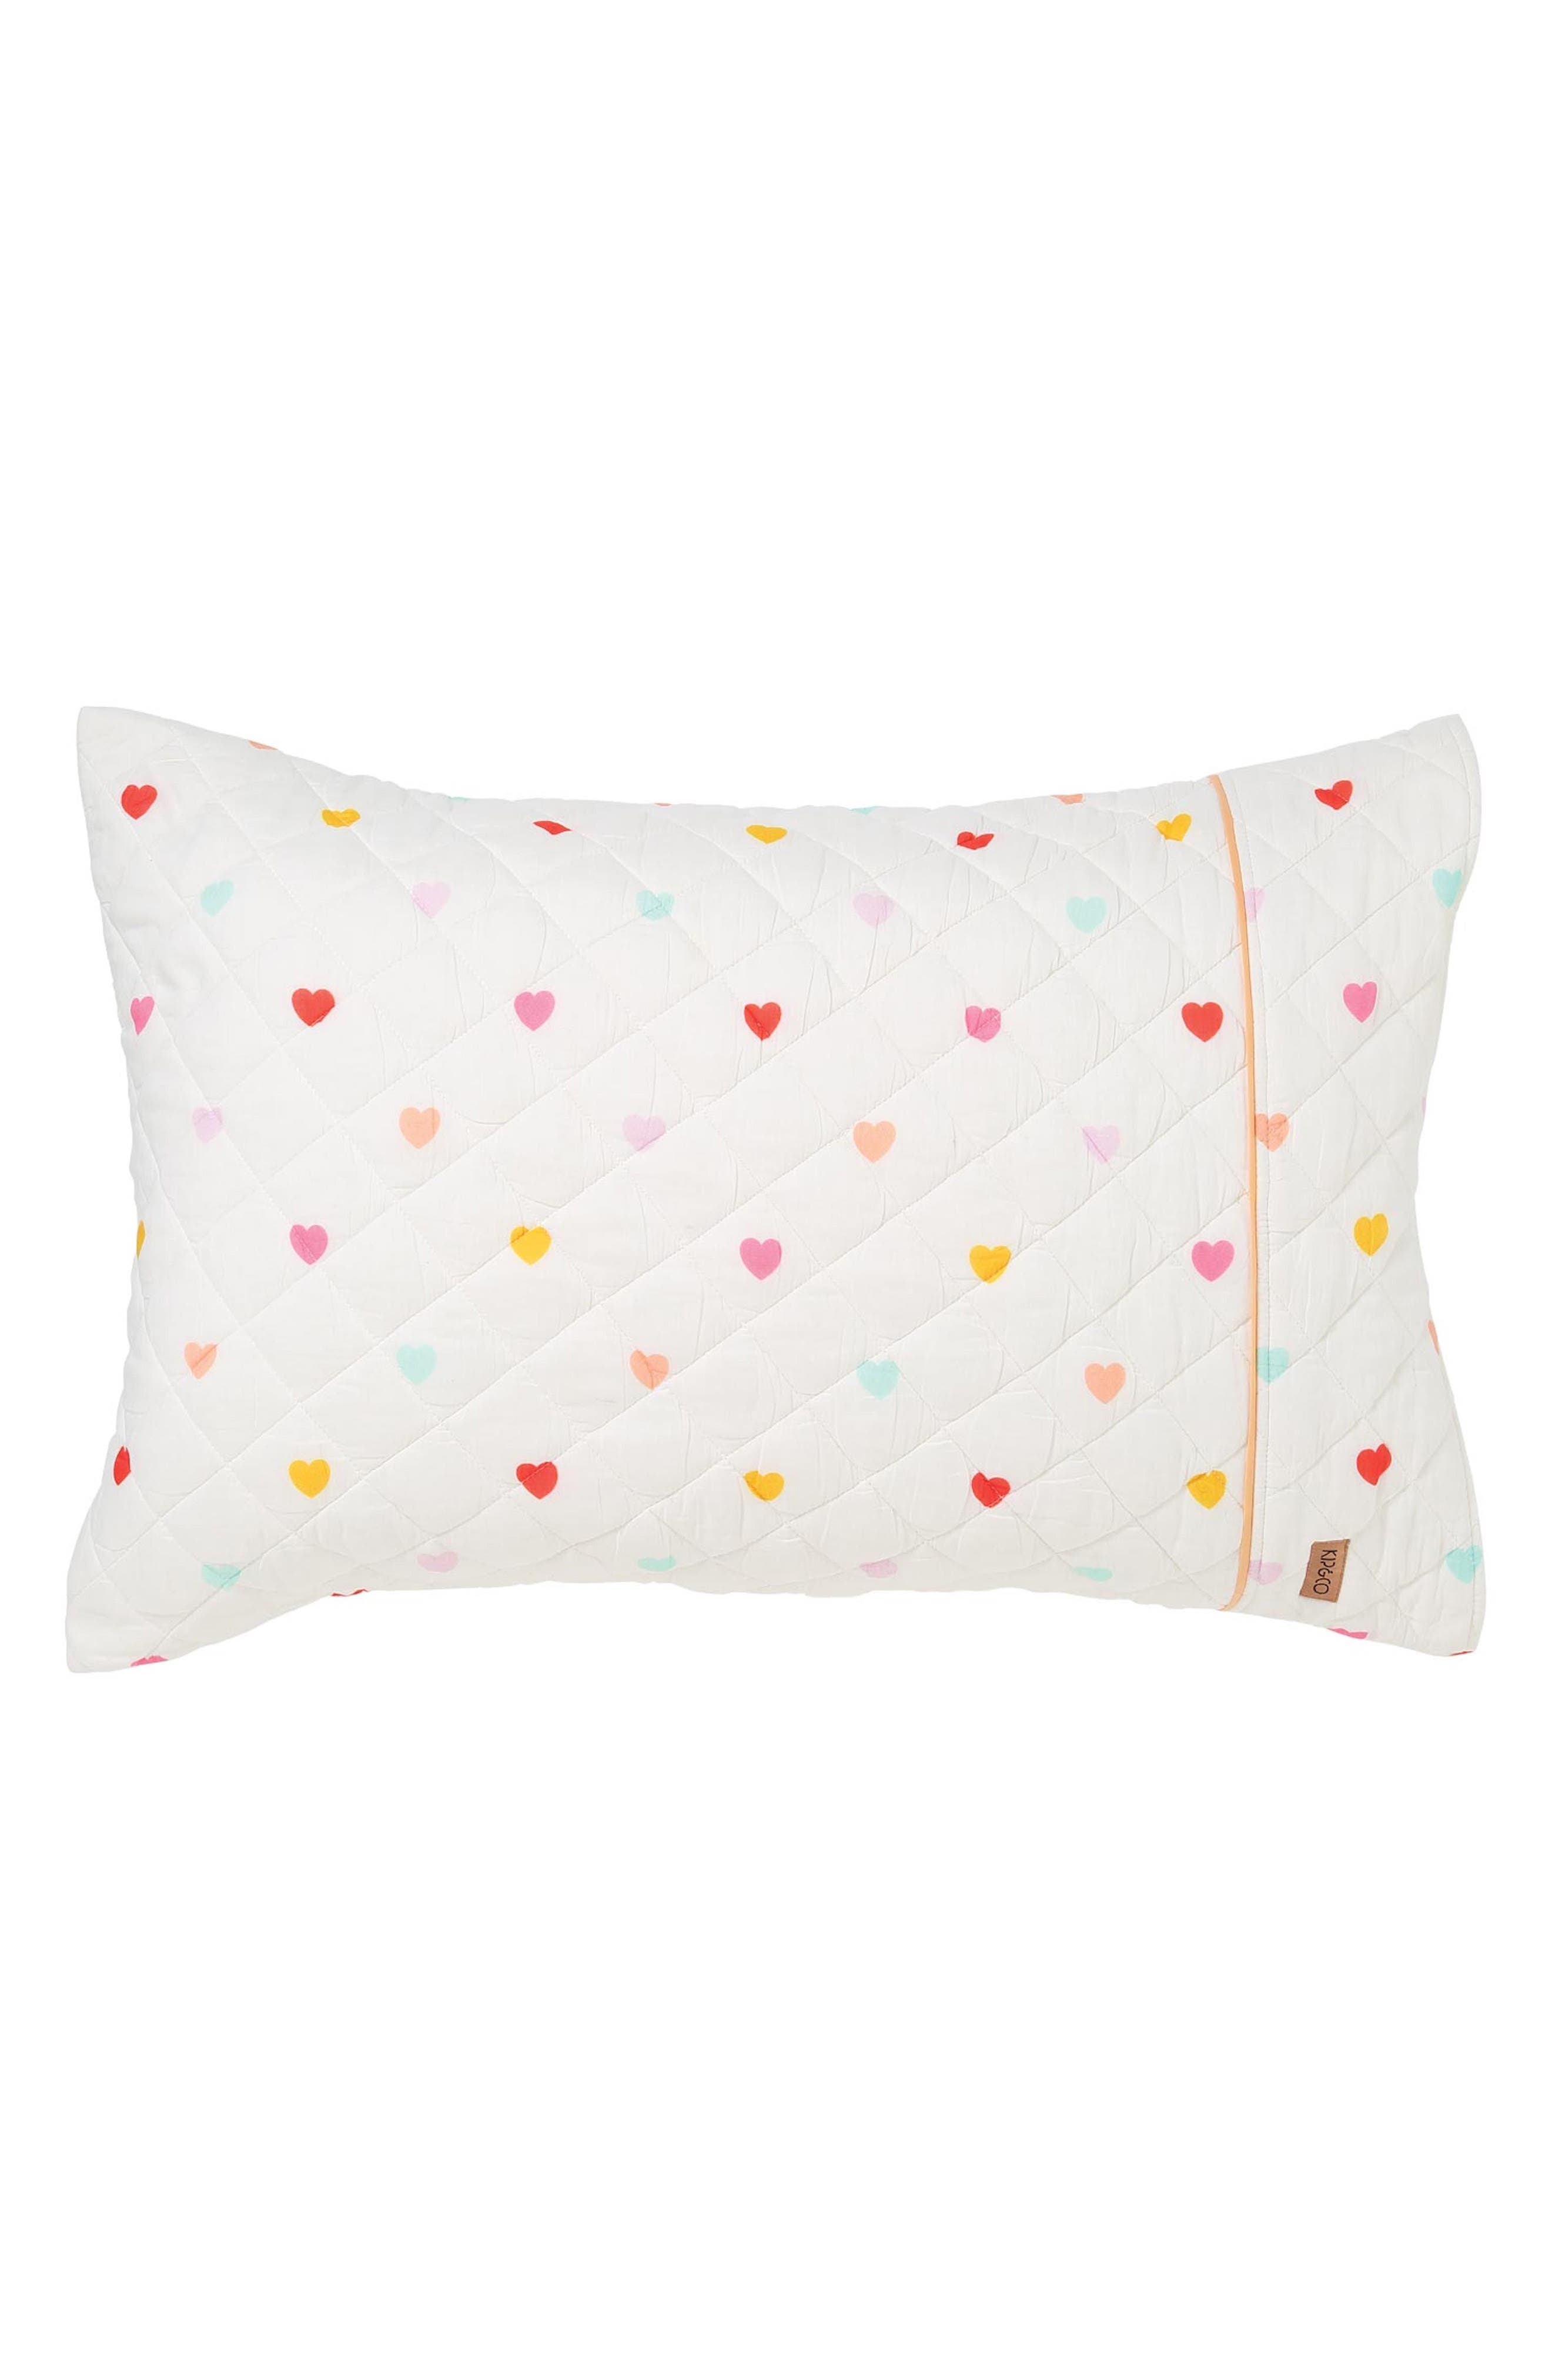 I Heart You Quilted Cotton Pillowcase,                         Main,                         color, Multi